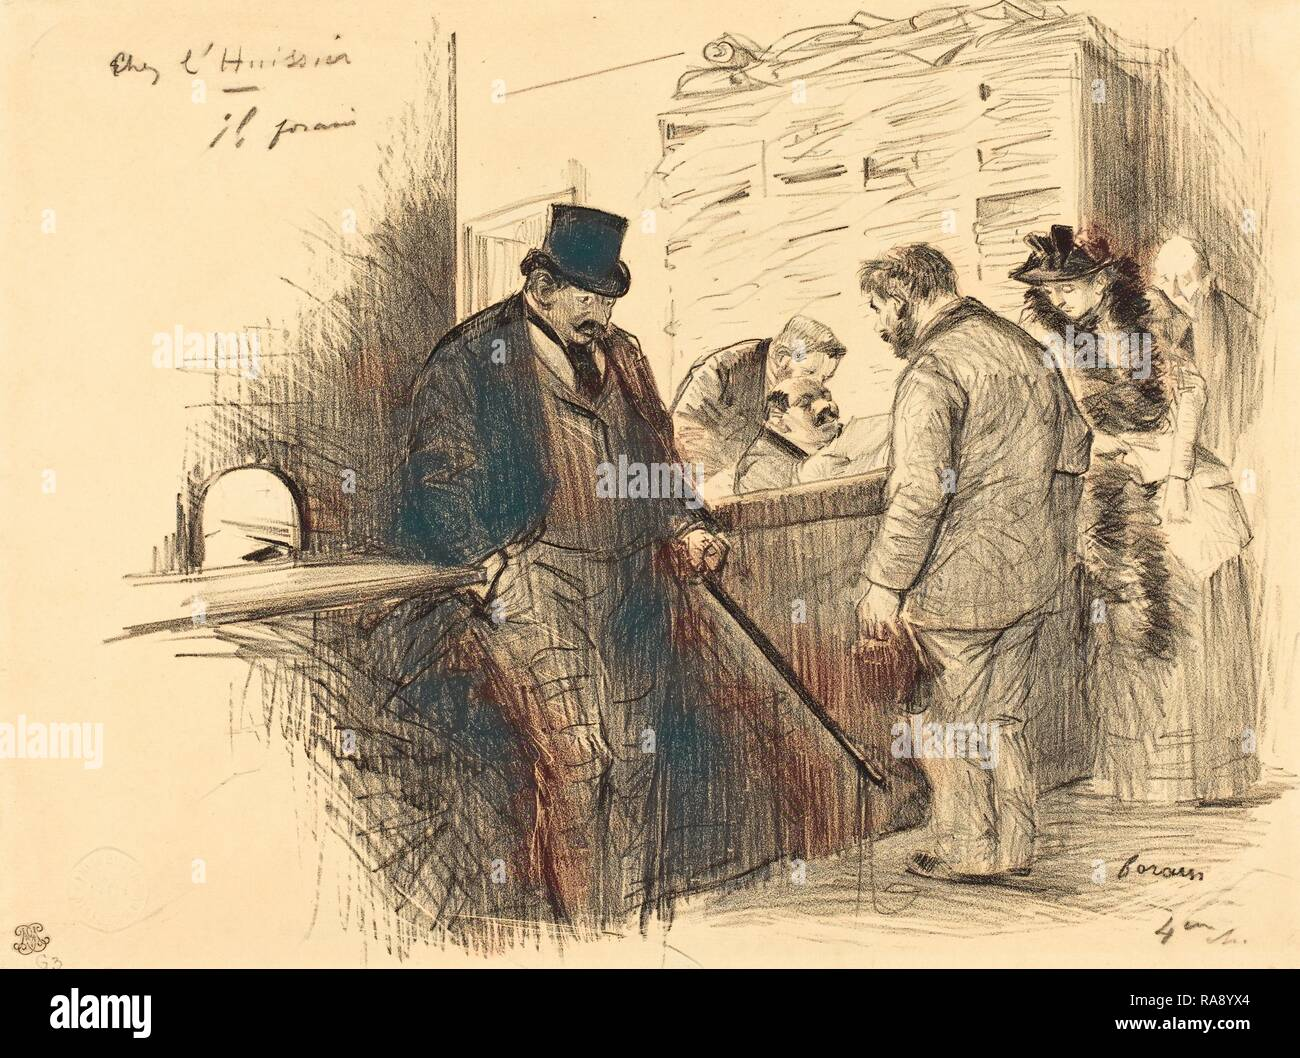 Jean-Louis Forain (French, 1852 - 1931), At the Bailiff's, c. 1891, lithograph. Reimagined by Gibon. Classic art with reimagined - Stock Image